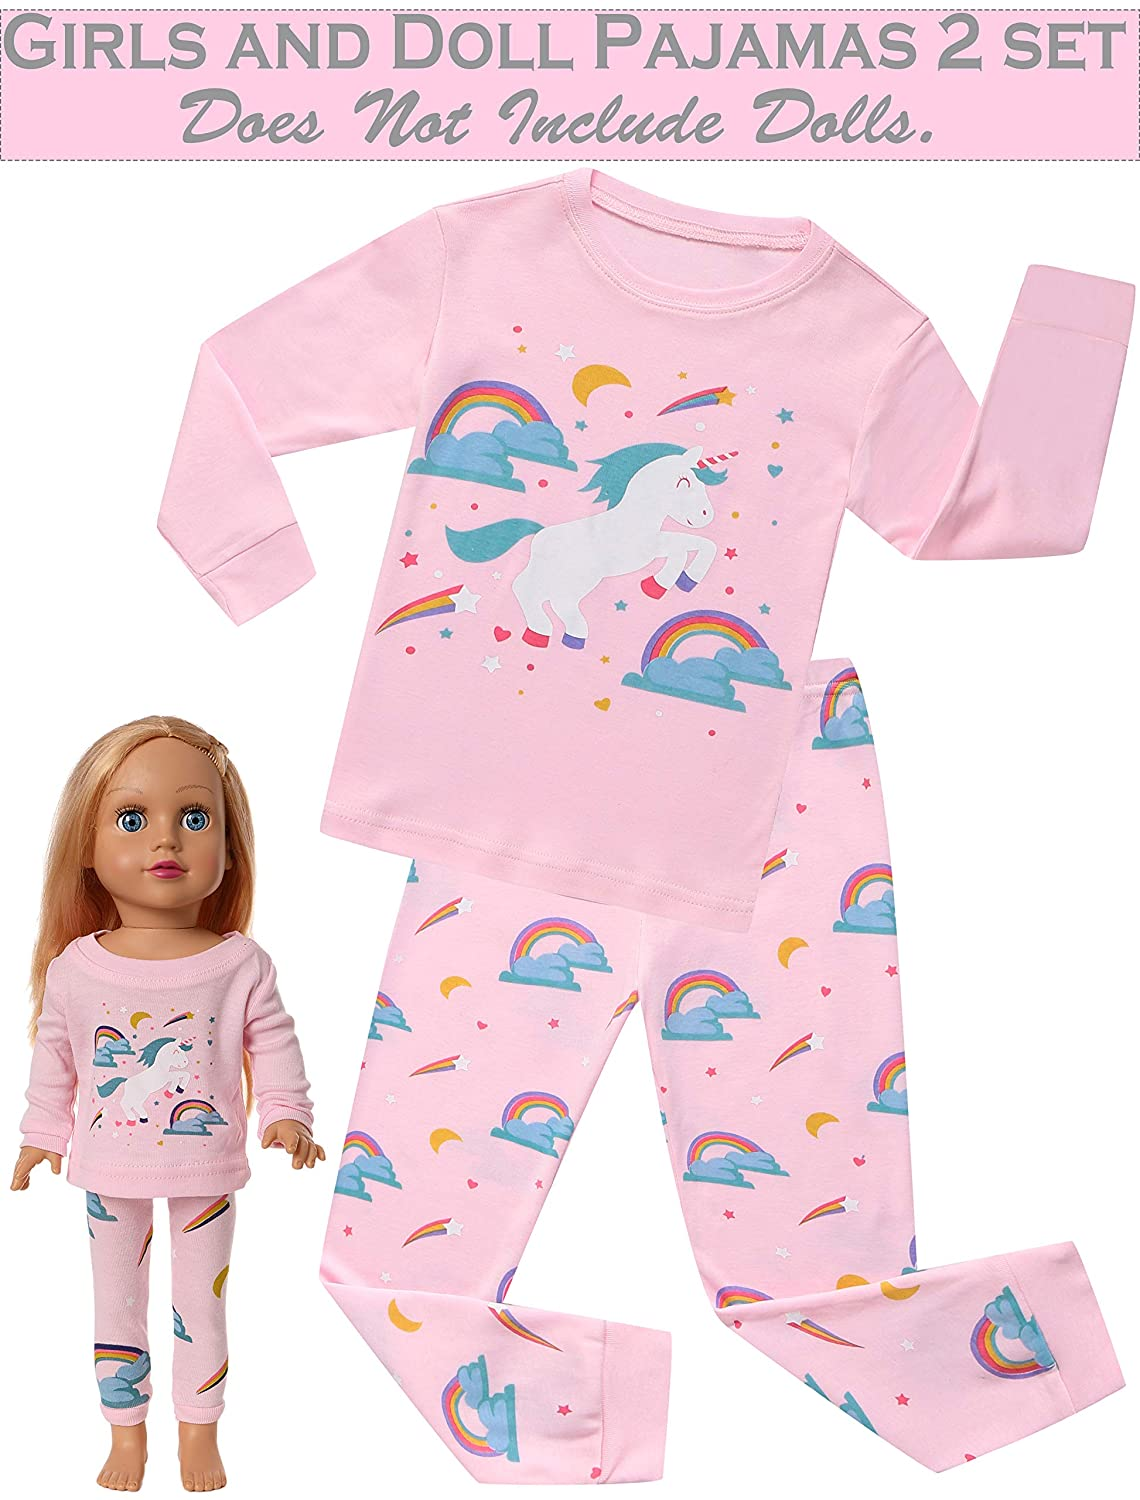 924f2af7ffa0 Amazon.com  Unicorn Pajamas Sleepwear Clothes Matching Doll   Girls ...